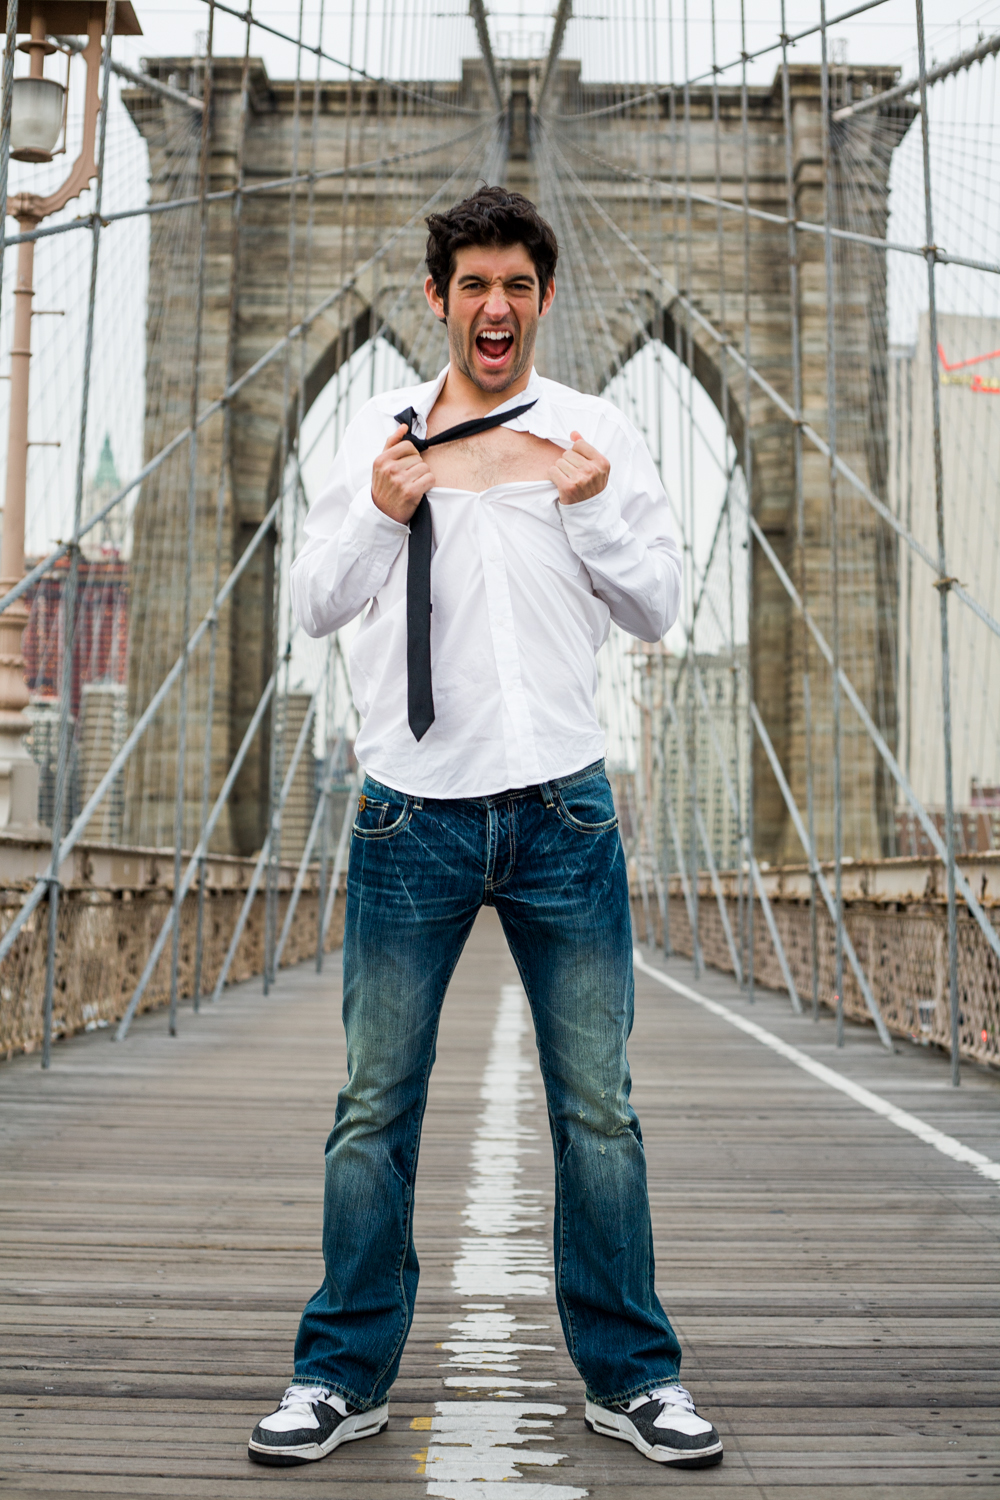 Man_screaming_on_BrooklynBridge.jpg